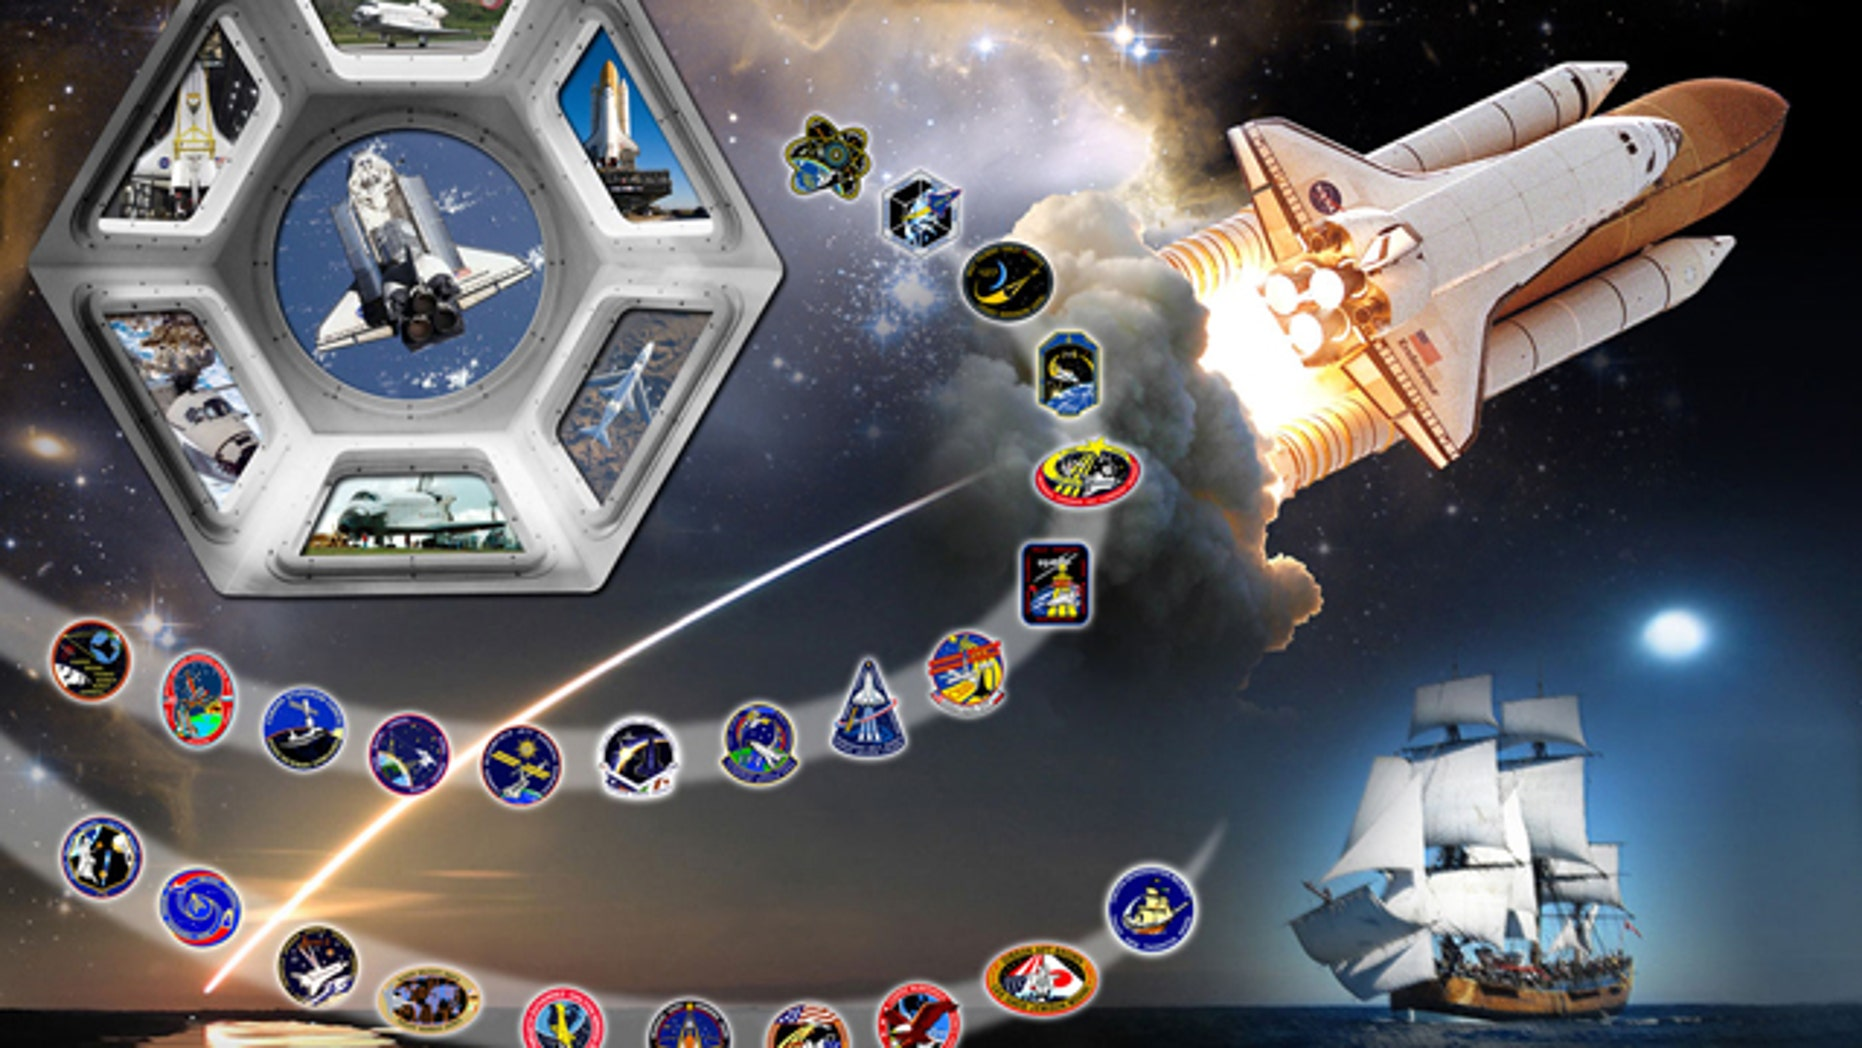 NASA's tribute art for space shuttle Endeavour depicting OV-105 and its 25 mission patches.